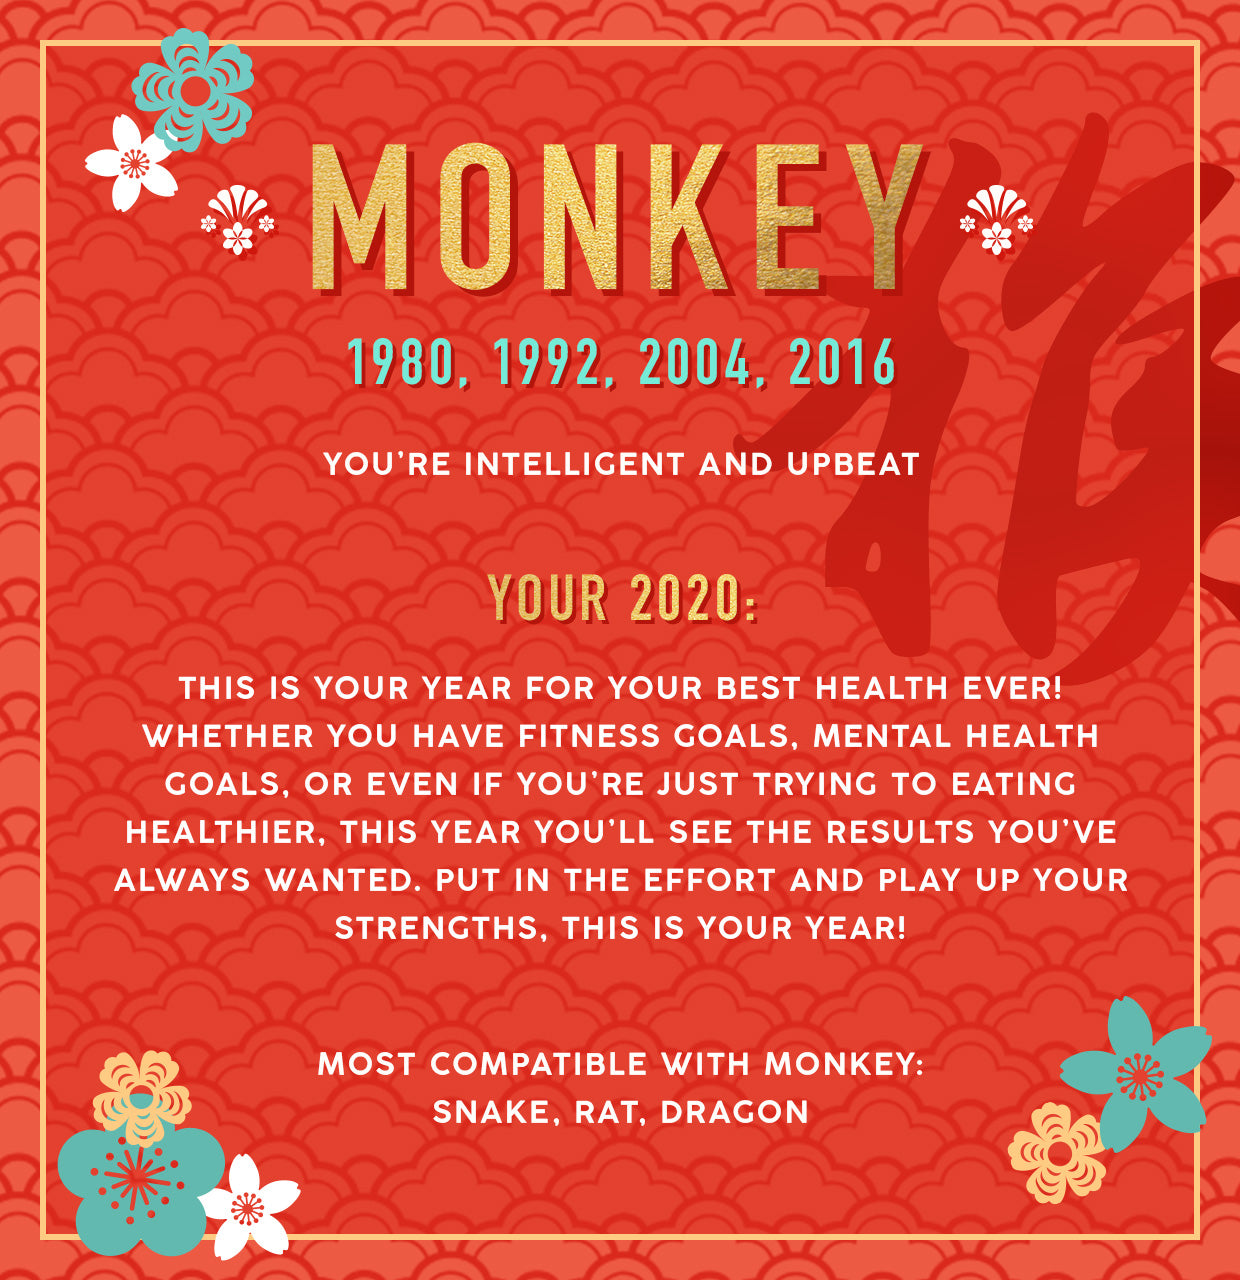 Monkey Lunar New Year Collection Banner Image